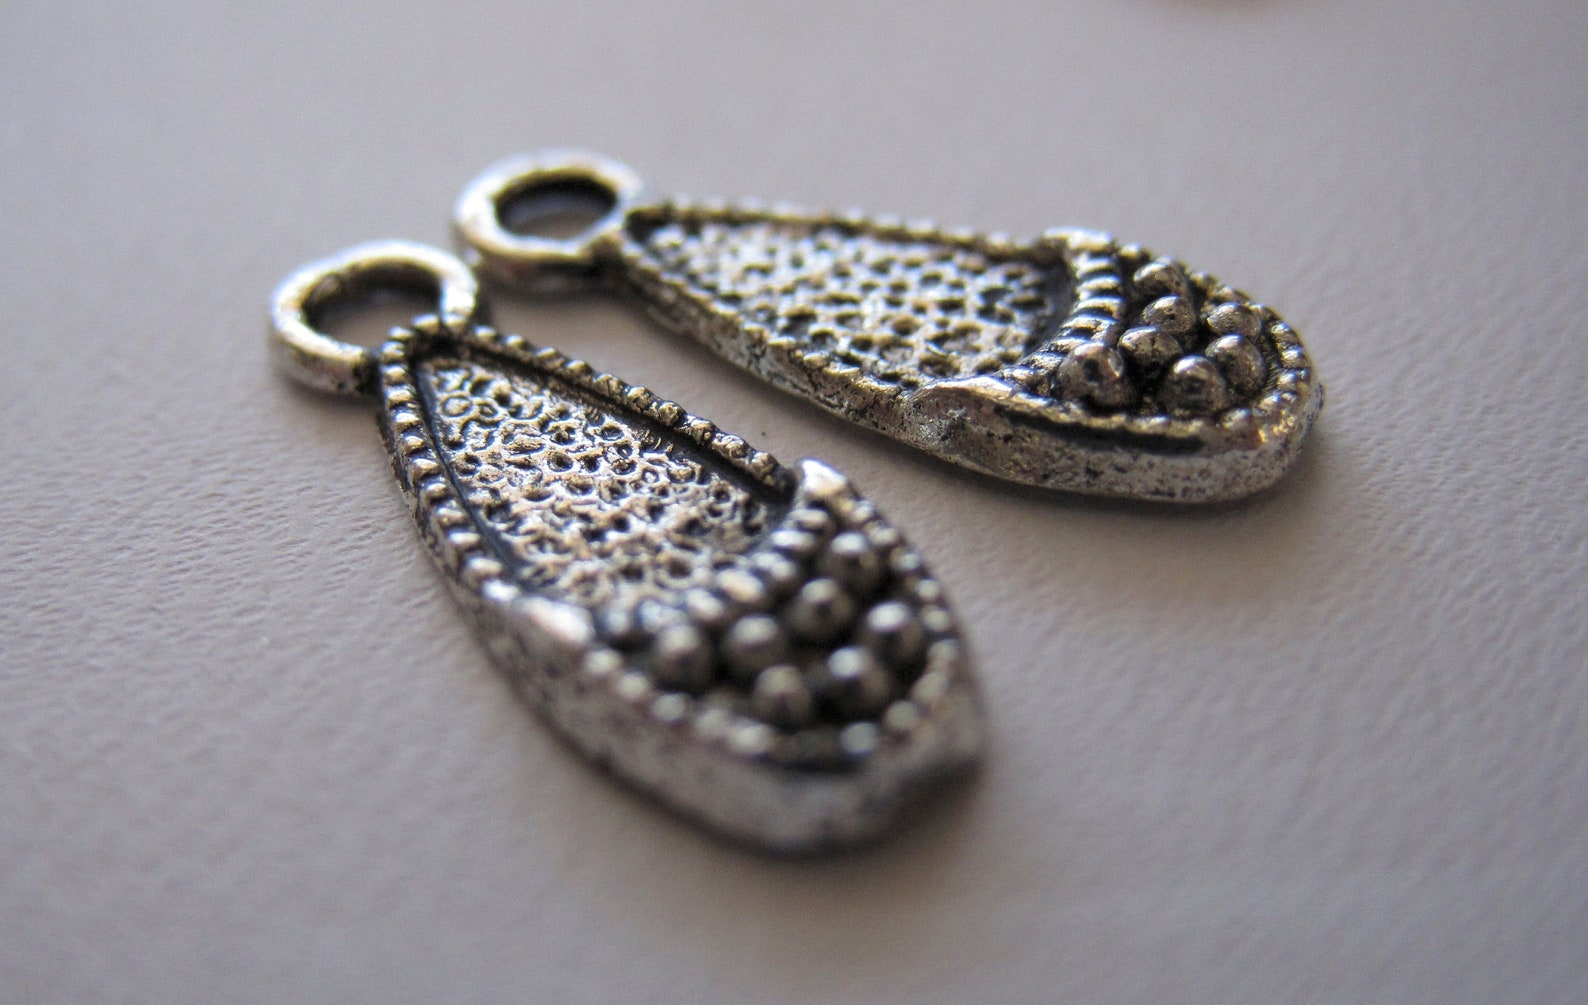 charms antique silver textured ballet flat shoes 16mm charms pendants findings jewelry supplies (lot of 10) by bysupply